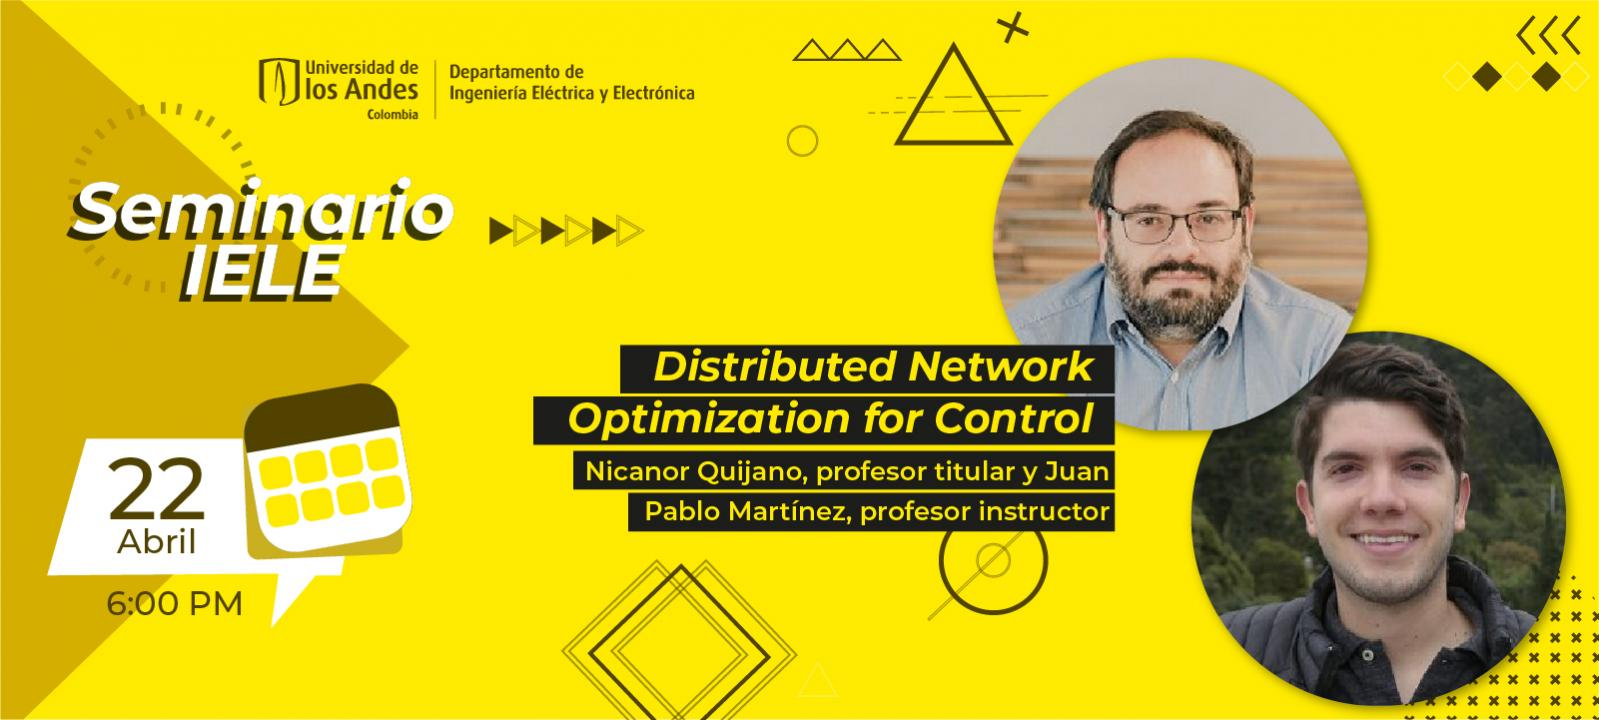 Distributed Network Optimization for Control